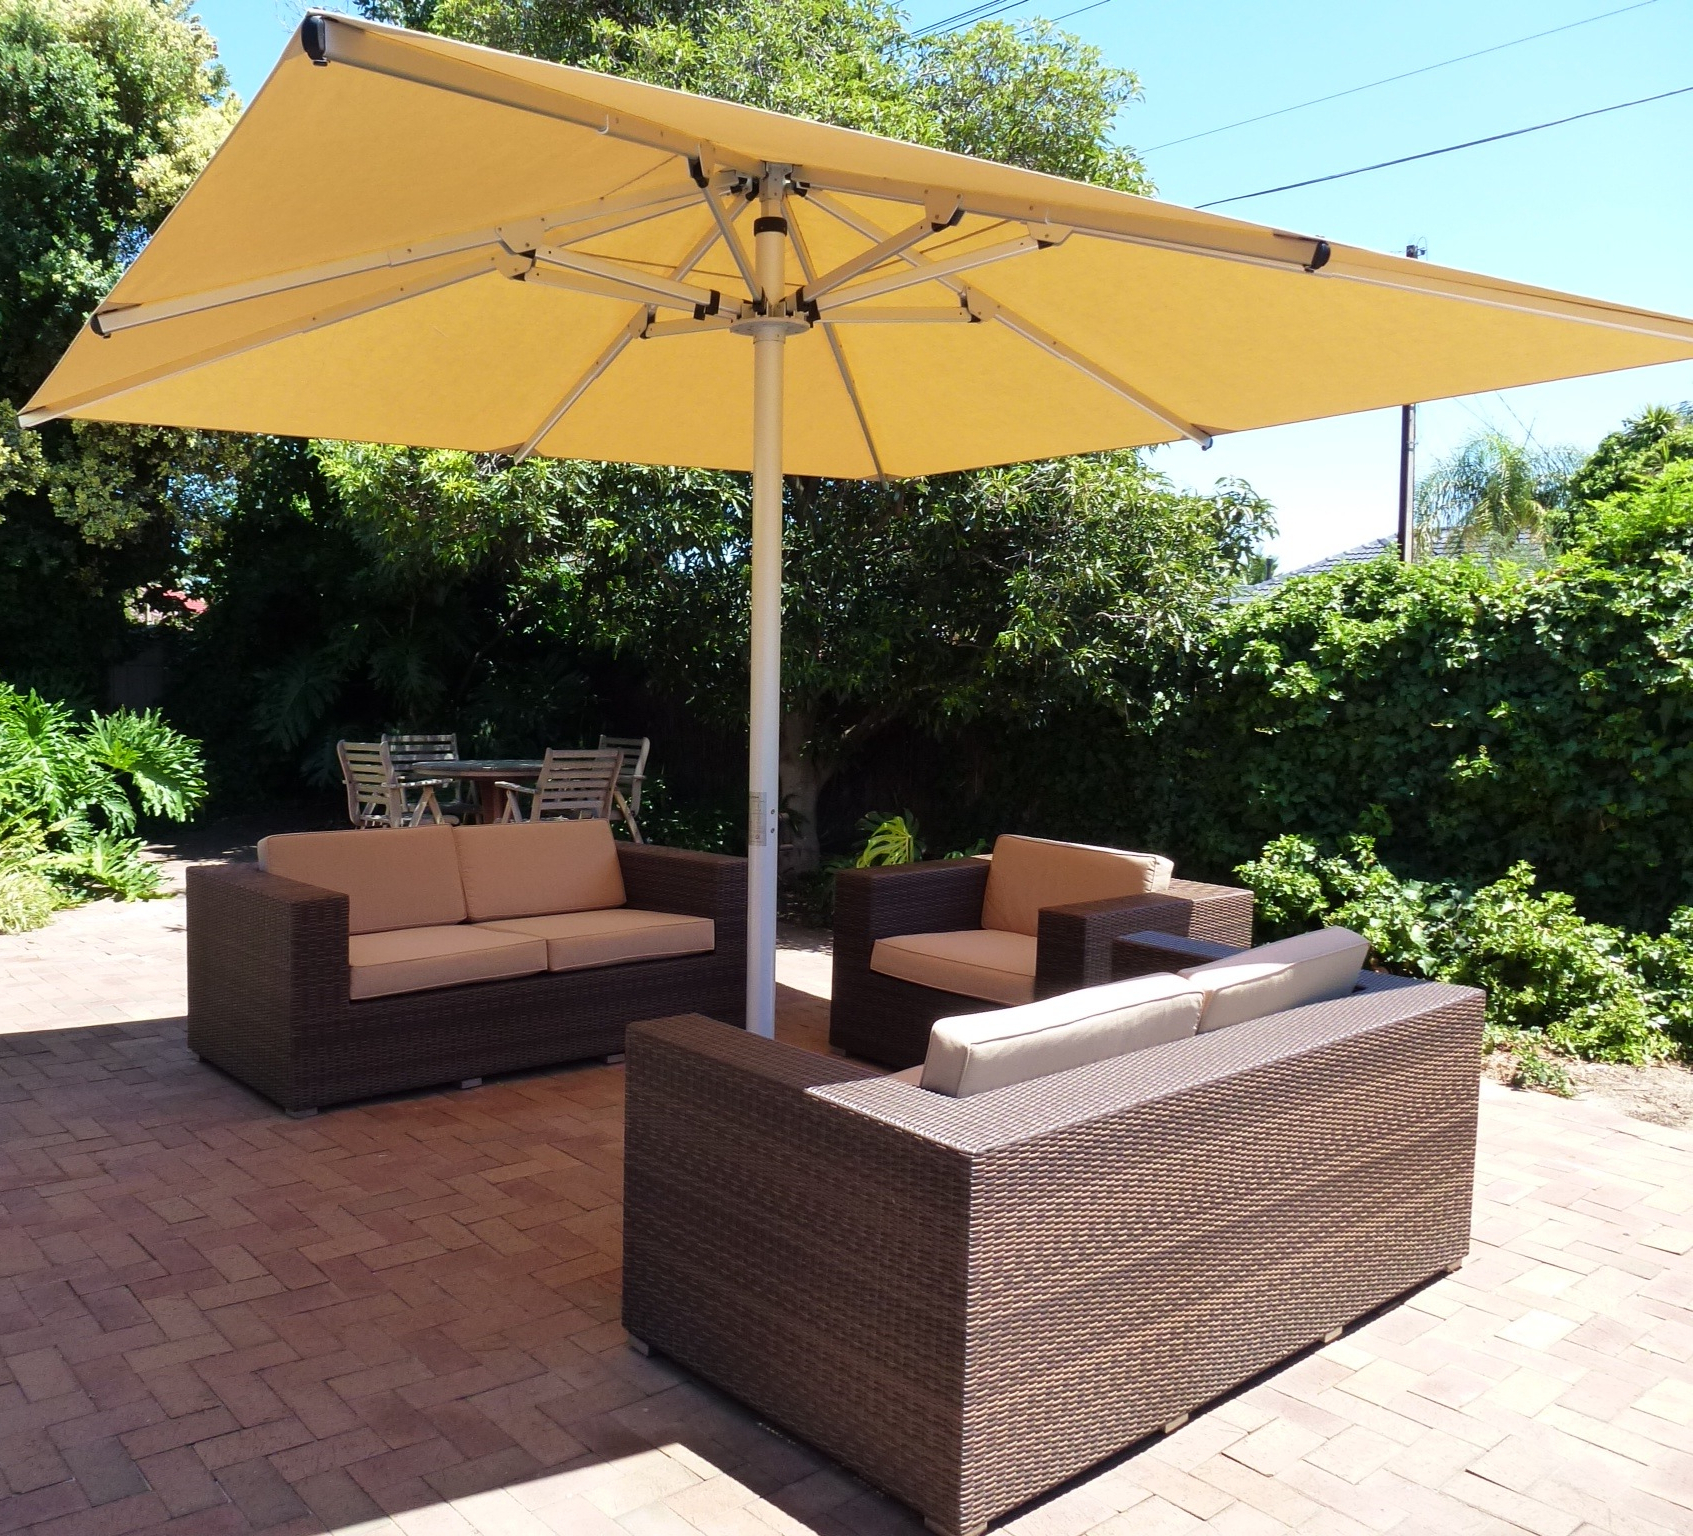 Mald Square Cantilever Umbrellas Within Fashionable Stay Cool With Outdoor Umbrellas (View 8 of 20)